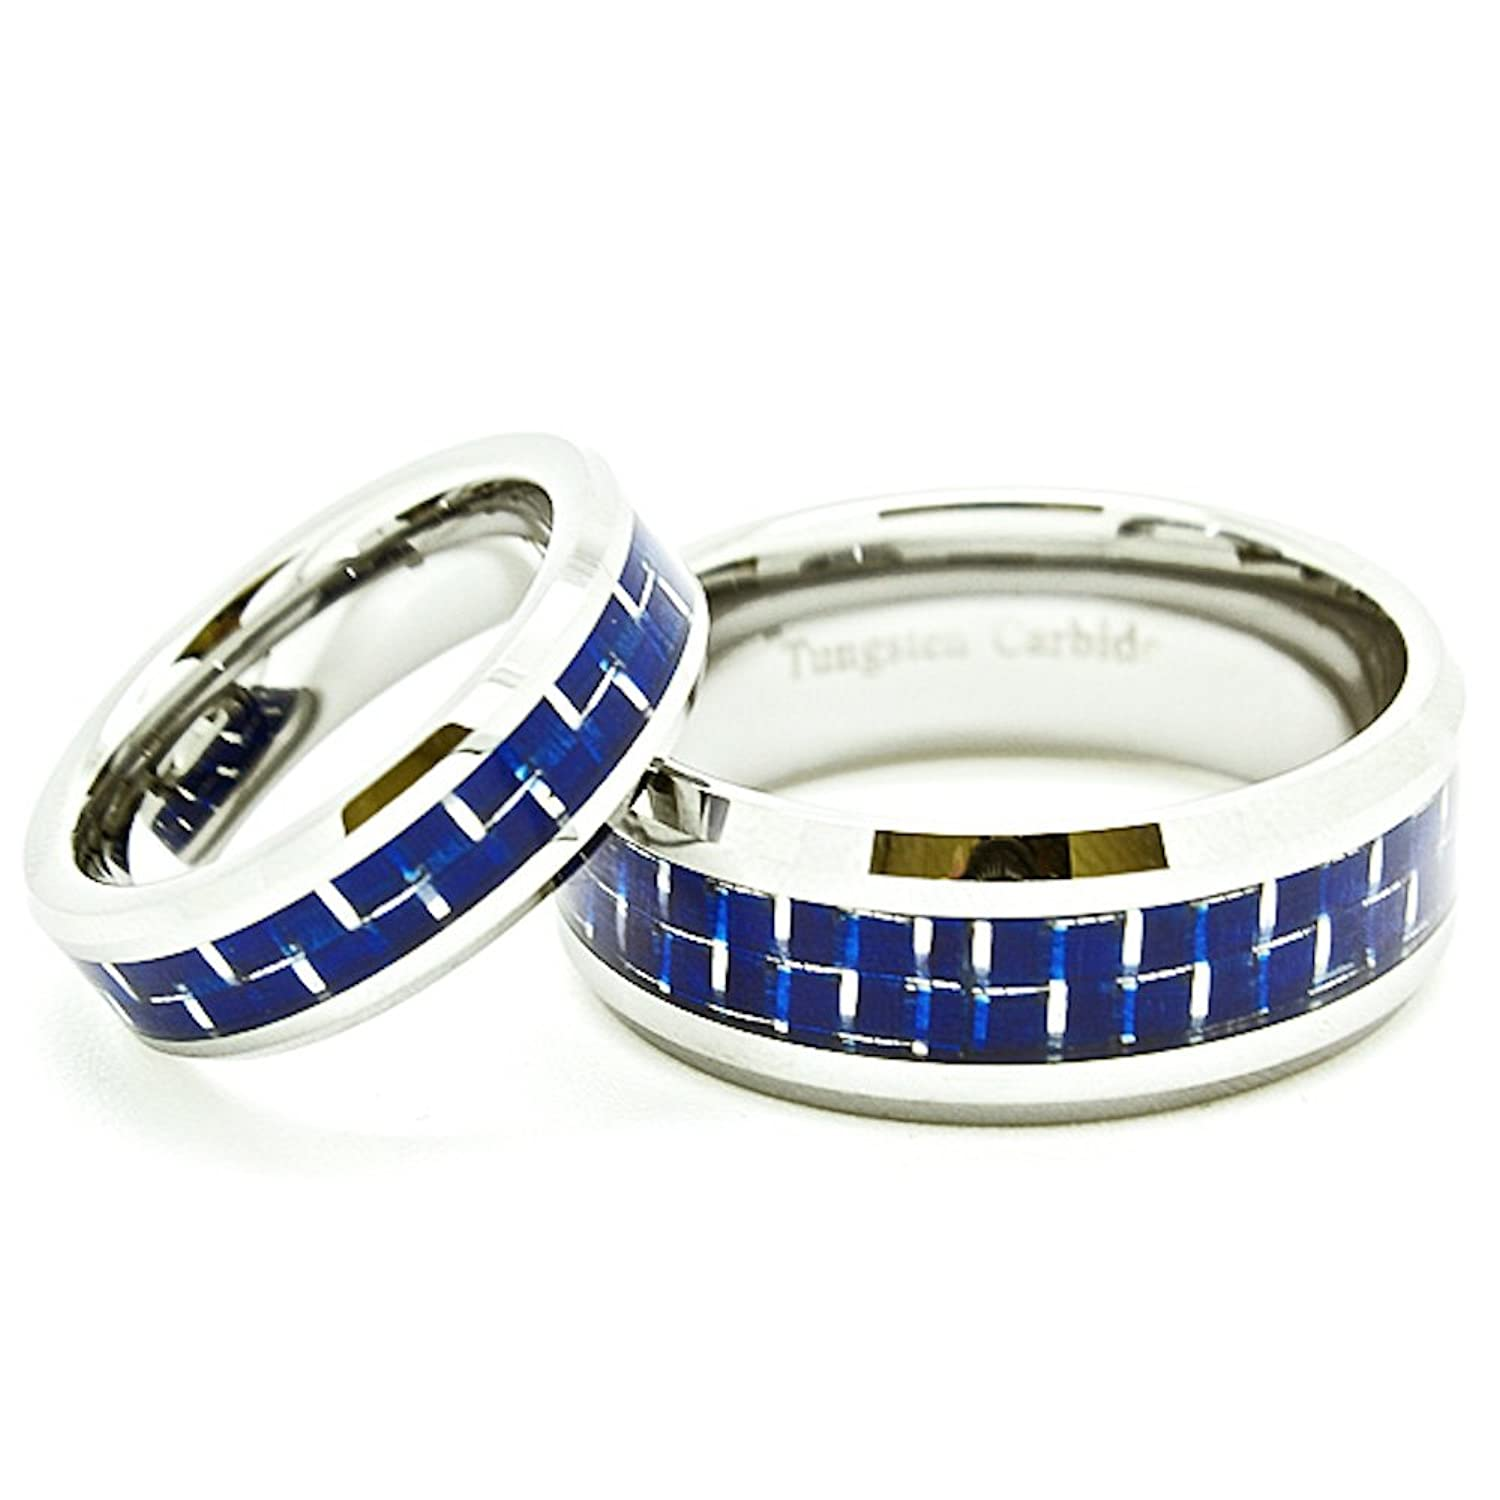 Matching 6mm & 9mm Blue Carbon Fiber Inlay Tungsten Wedding Bands (Check listing for sizes)